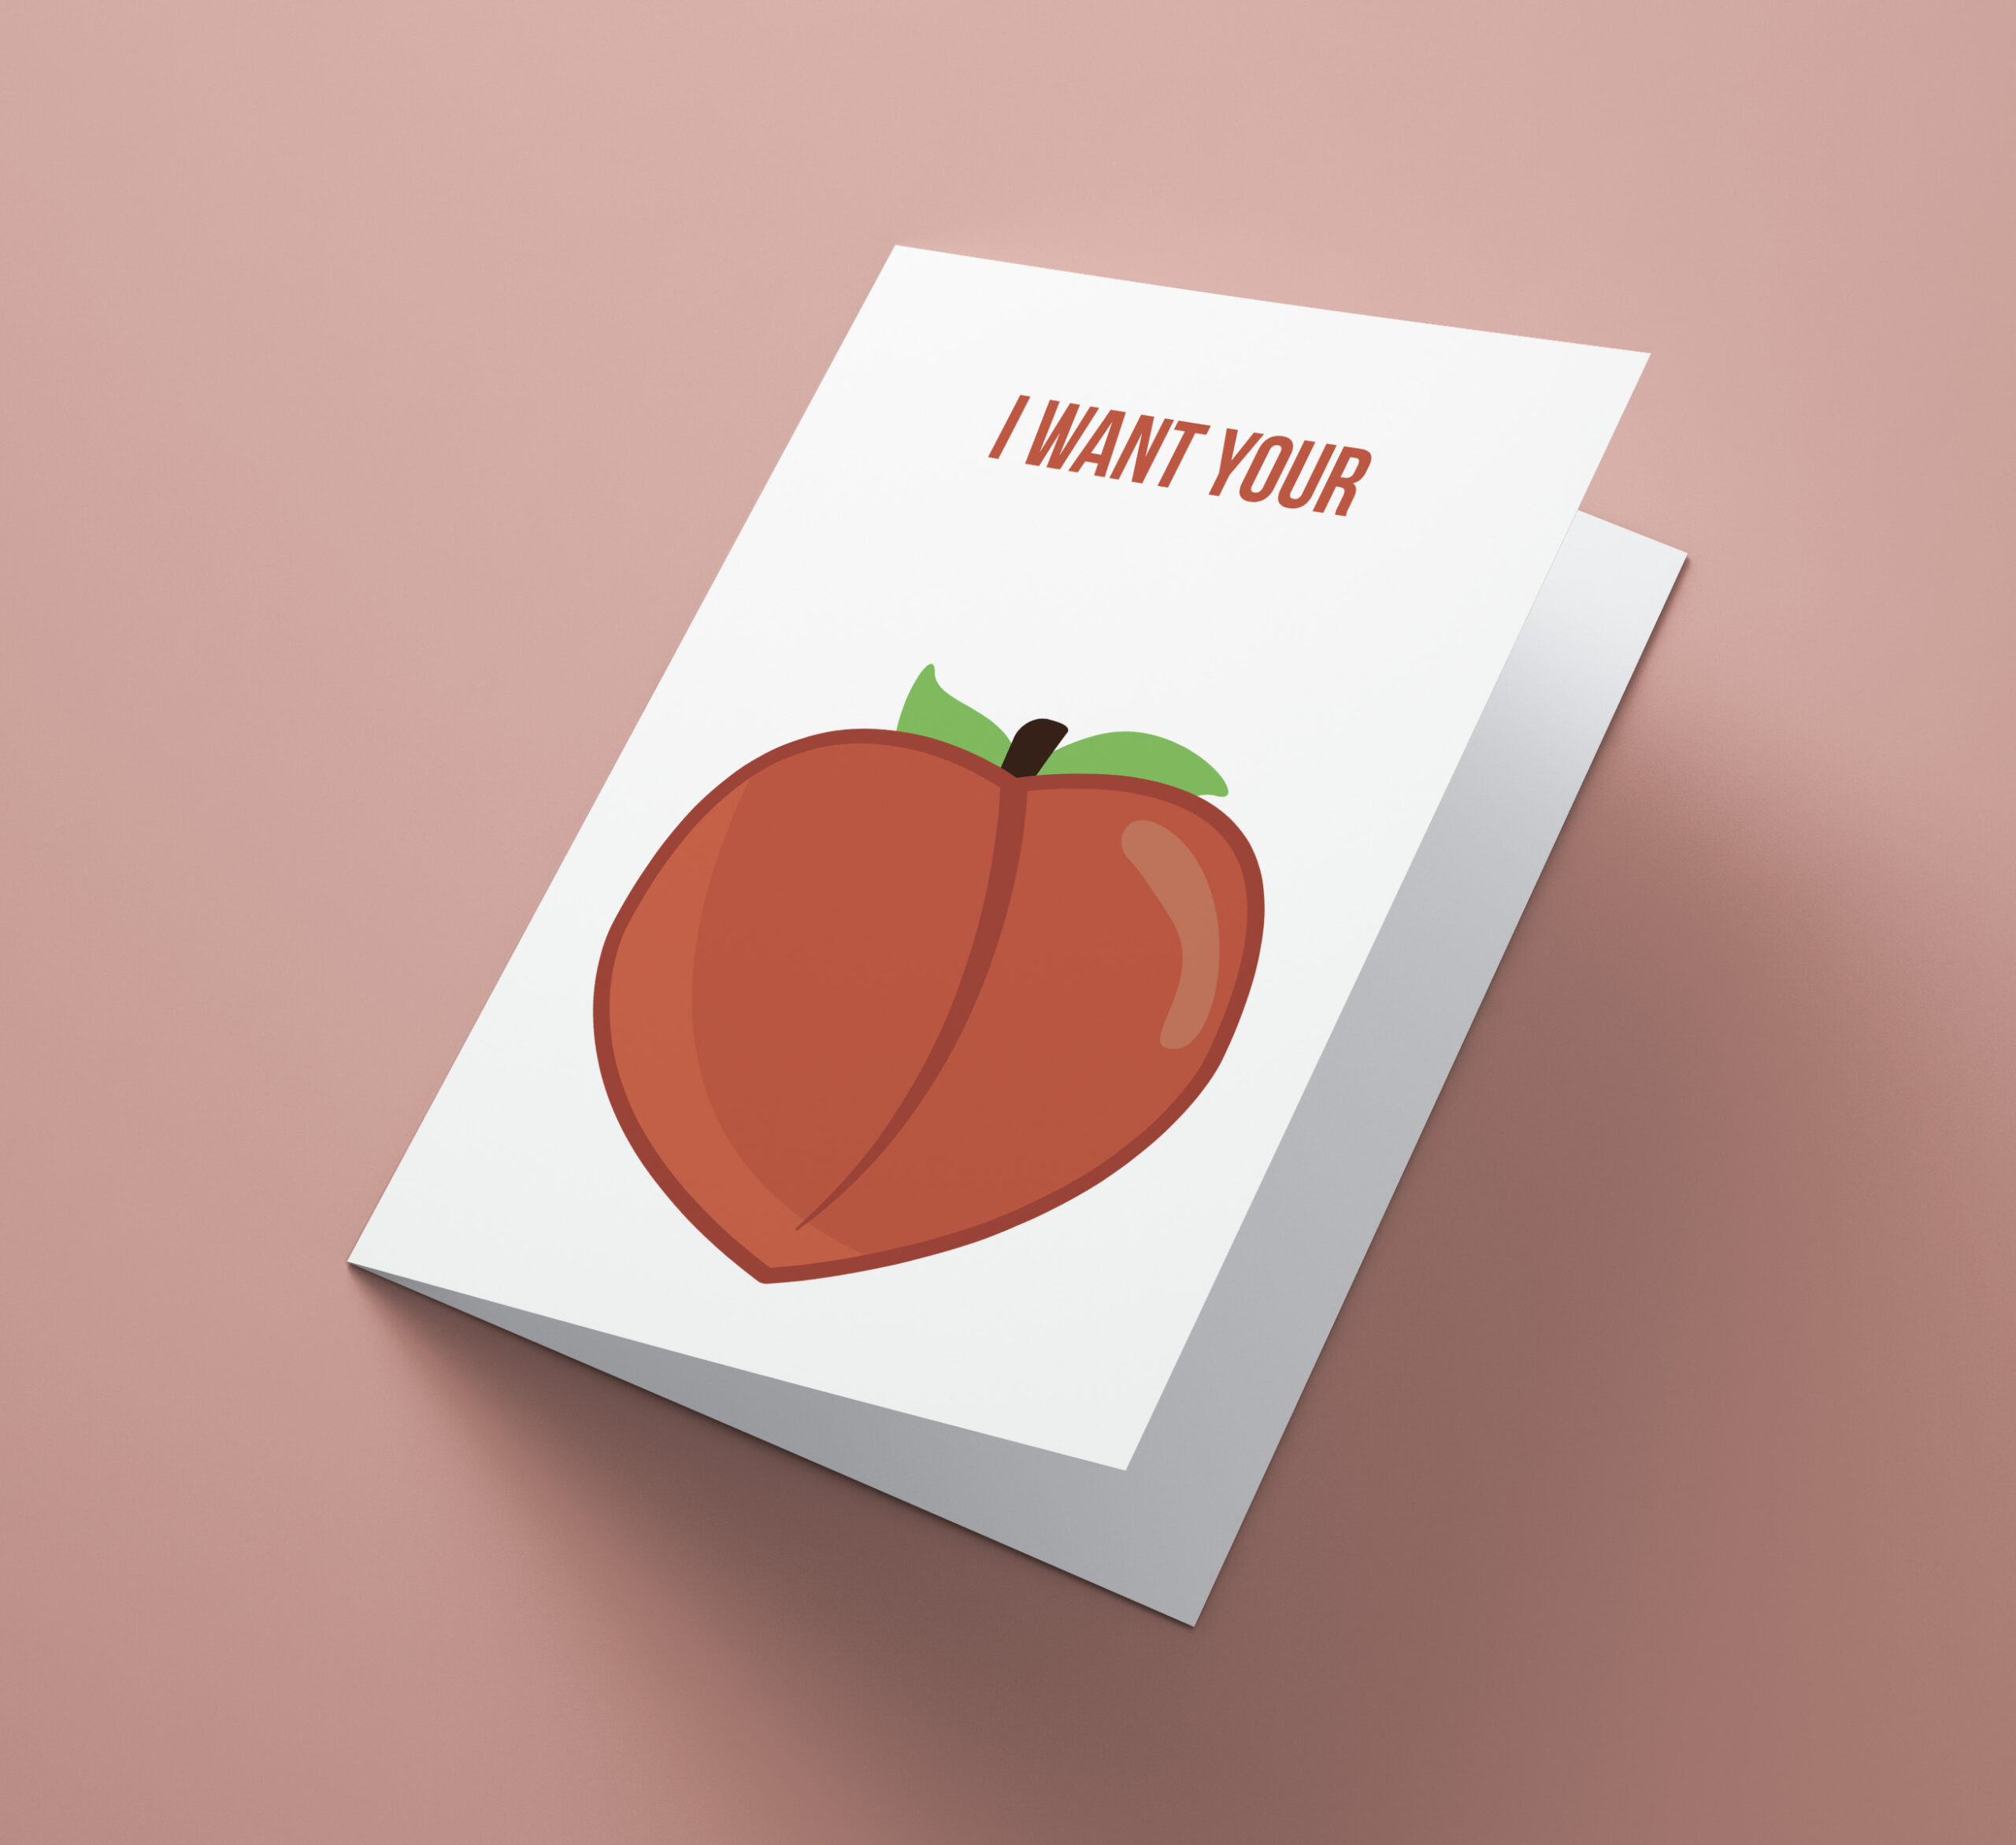 I Want Your Peach